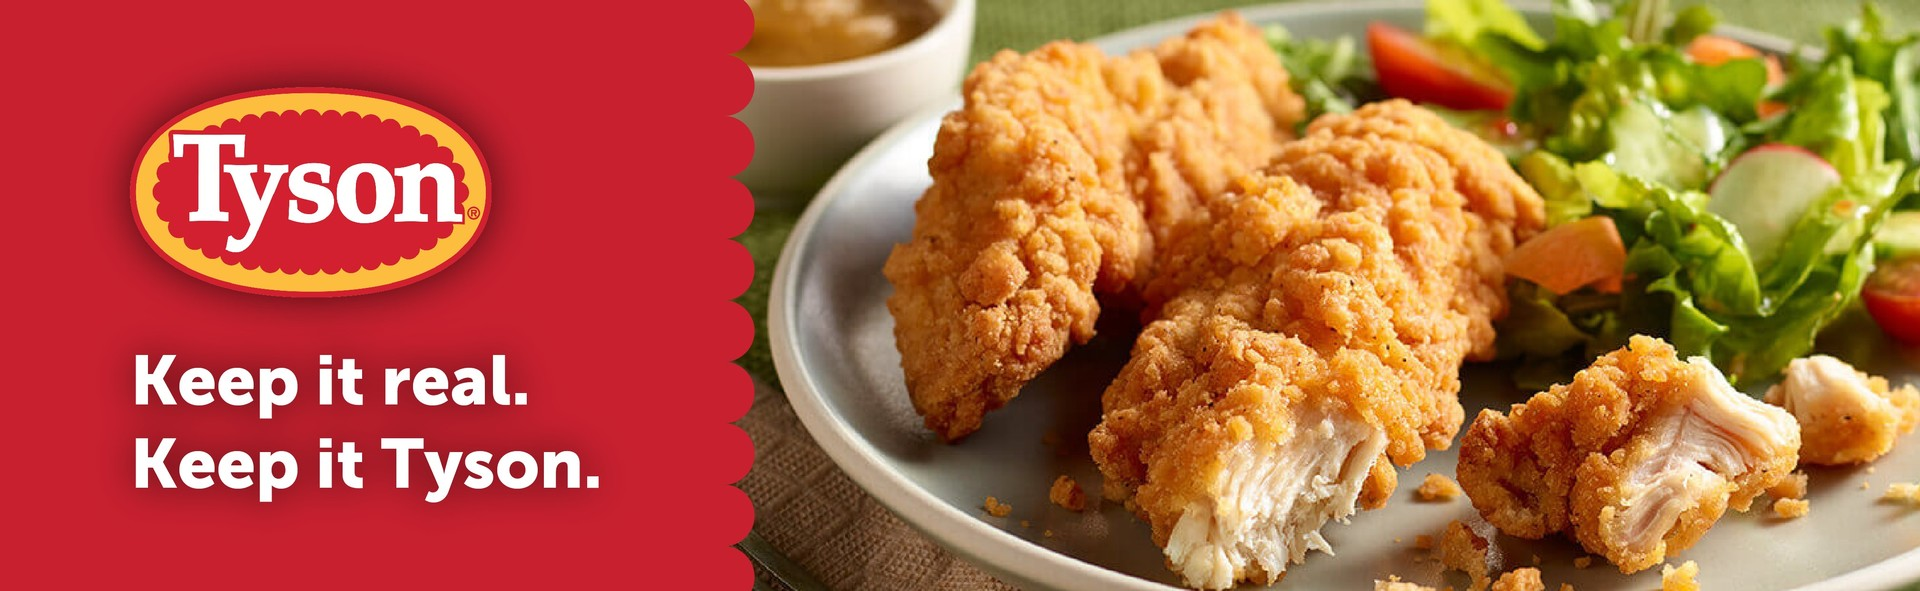 Tyson All Natural Crispy Chicken Strips 25oz Target